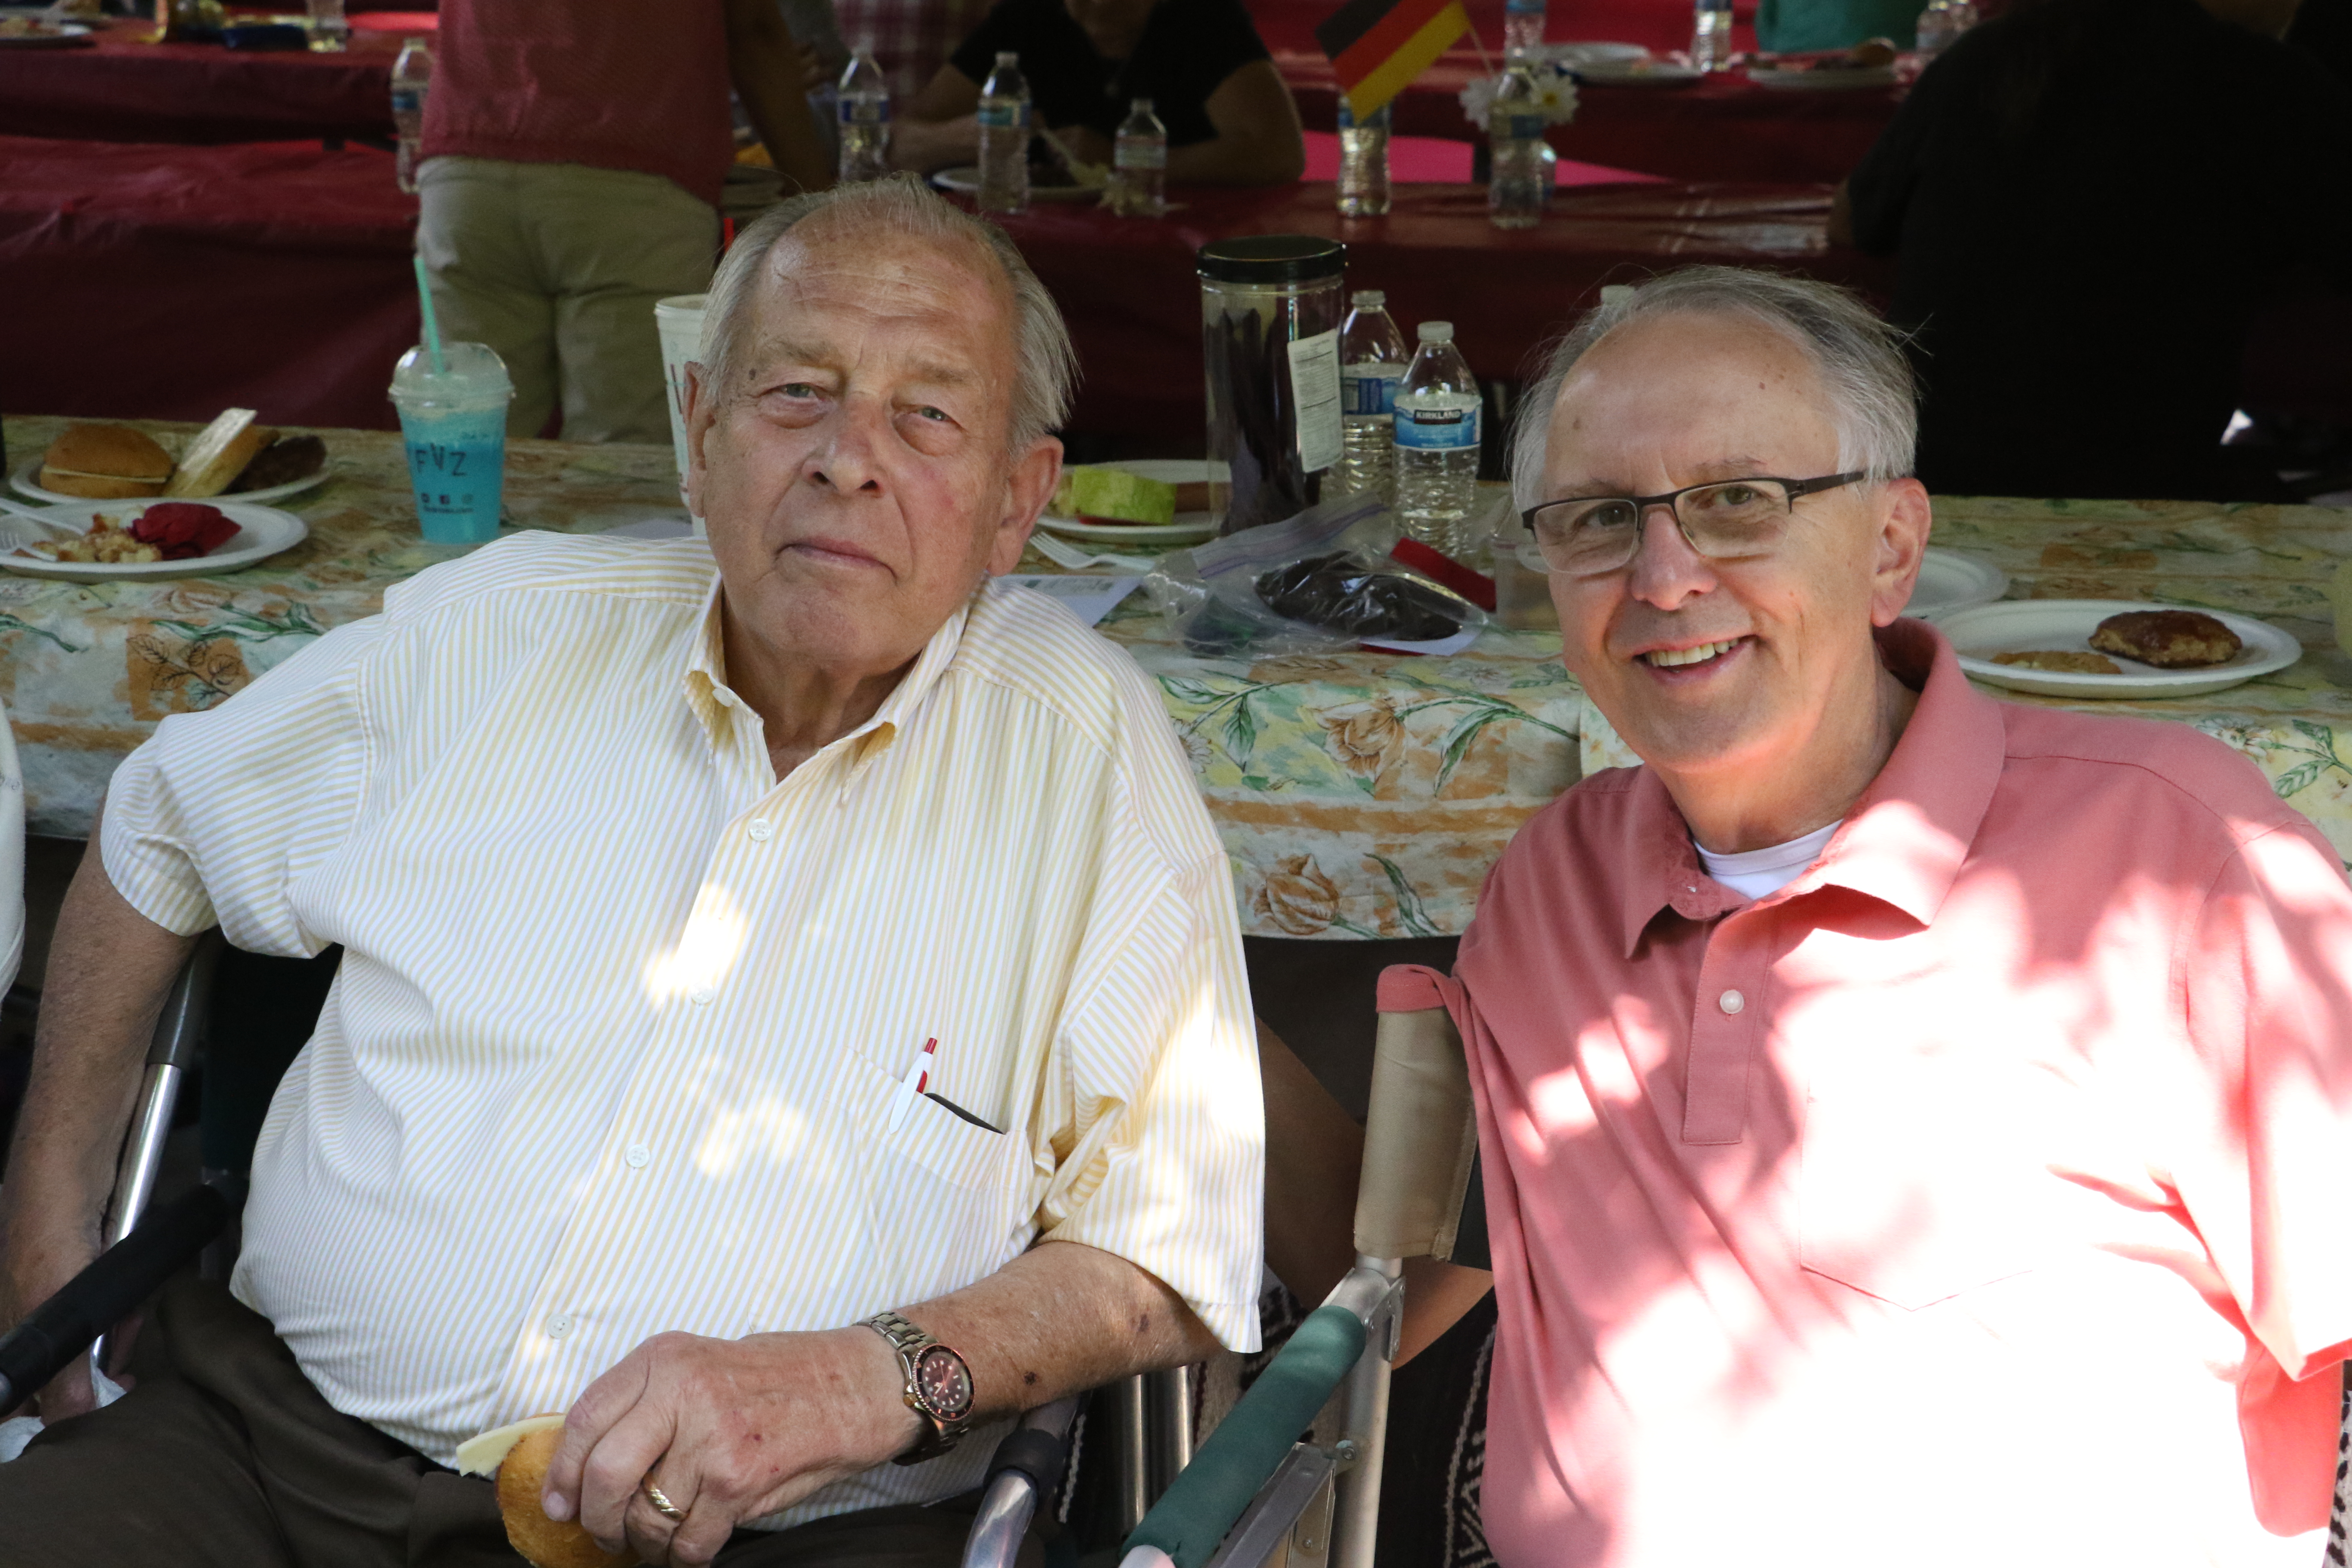 Bishop Volker Diethelm Hagen of the German Speaking Ward and President Richard B. McKeown, the Salt Lake Central Stake president, pose for a photo together at the ward's picnic on July 13, 2019.